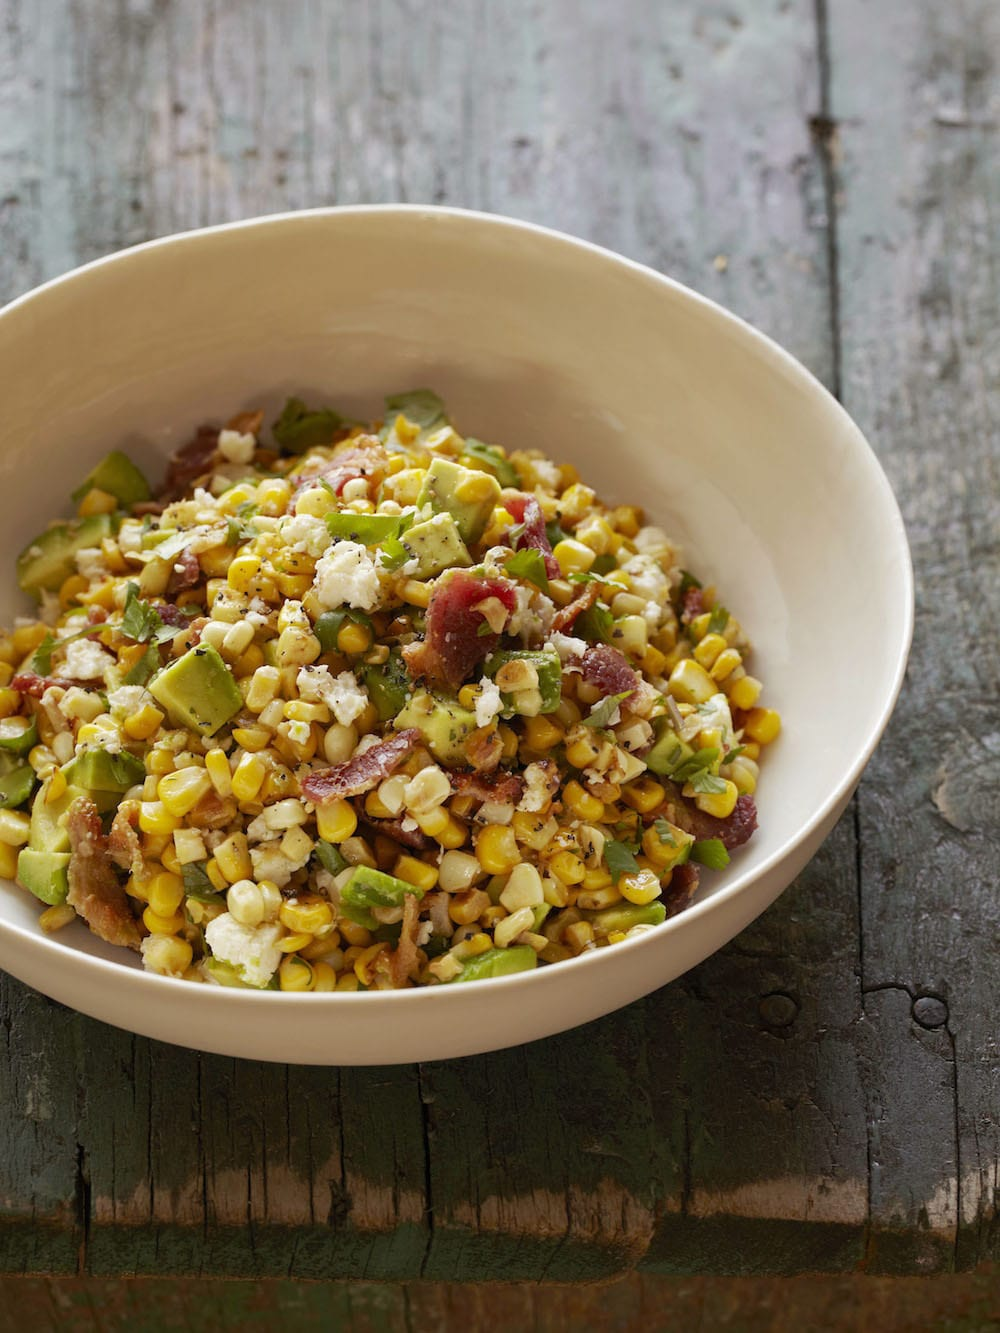 Avocado Bacon and Corn Salad from Absolutely Avocados by Gaby Dalkin